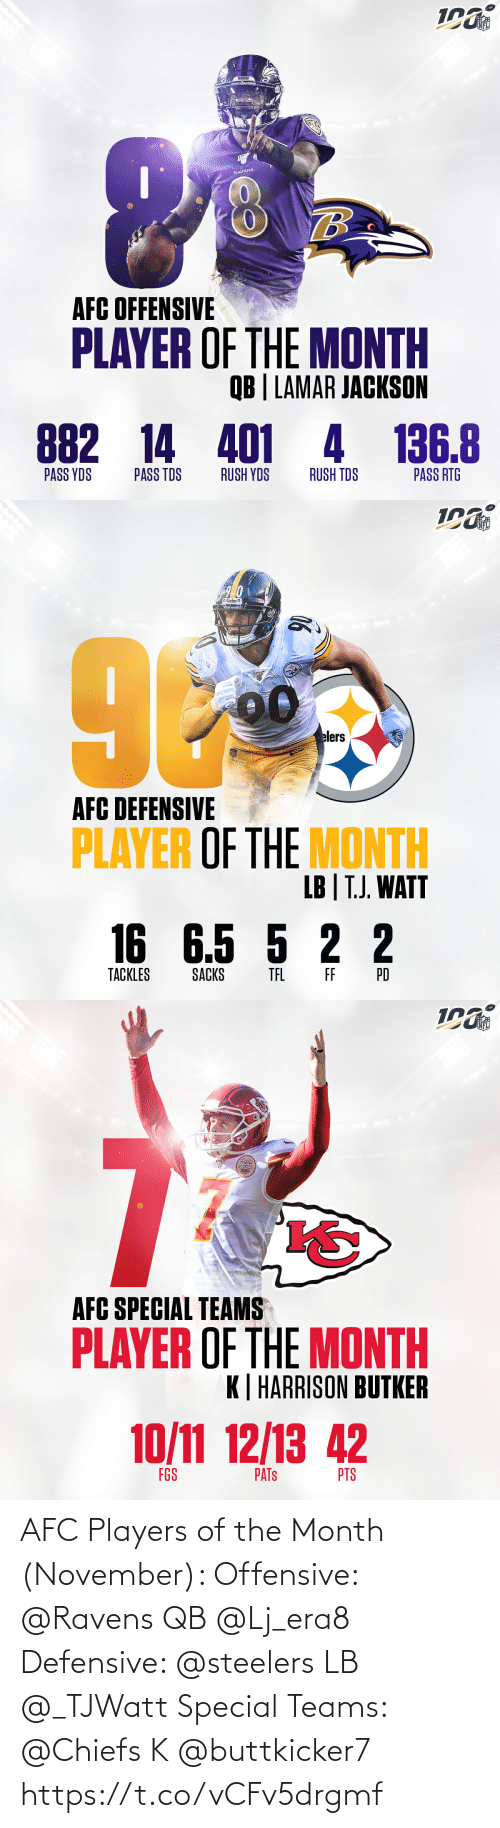 2 2: NFL  RAVENS  AFC OFFENSIVE  PLAYER OF THE MONTH  QB | LAMAR JACKSON  882 14 401 4 136.8  PASS YDS  PASS TDS  RUSH YDS  RUSH TDS  PASS RTG   NFL  elers  AFC DEFENSIVE  PLAYER OF THE MONTH  LB | T.J. WATT  16 6.5 5 2 2  TACKLES  SACKS  TEL  FF  PD   NFL  AFC SPECIAL TEAMS  PLAYER OF THE MONTH  K| HARRISON BUTKER  10/11 12/13 42  FGS  PTS  PATS AFC Players of the Month (November):   Offensive: @Ravens QB @Lj_era8  Defensive: @steelers LB @_TJWatt  Special Teams: @Chiefs K @buttkicker7 https://t.co/vCFv5drgmf